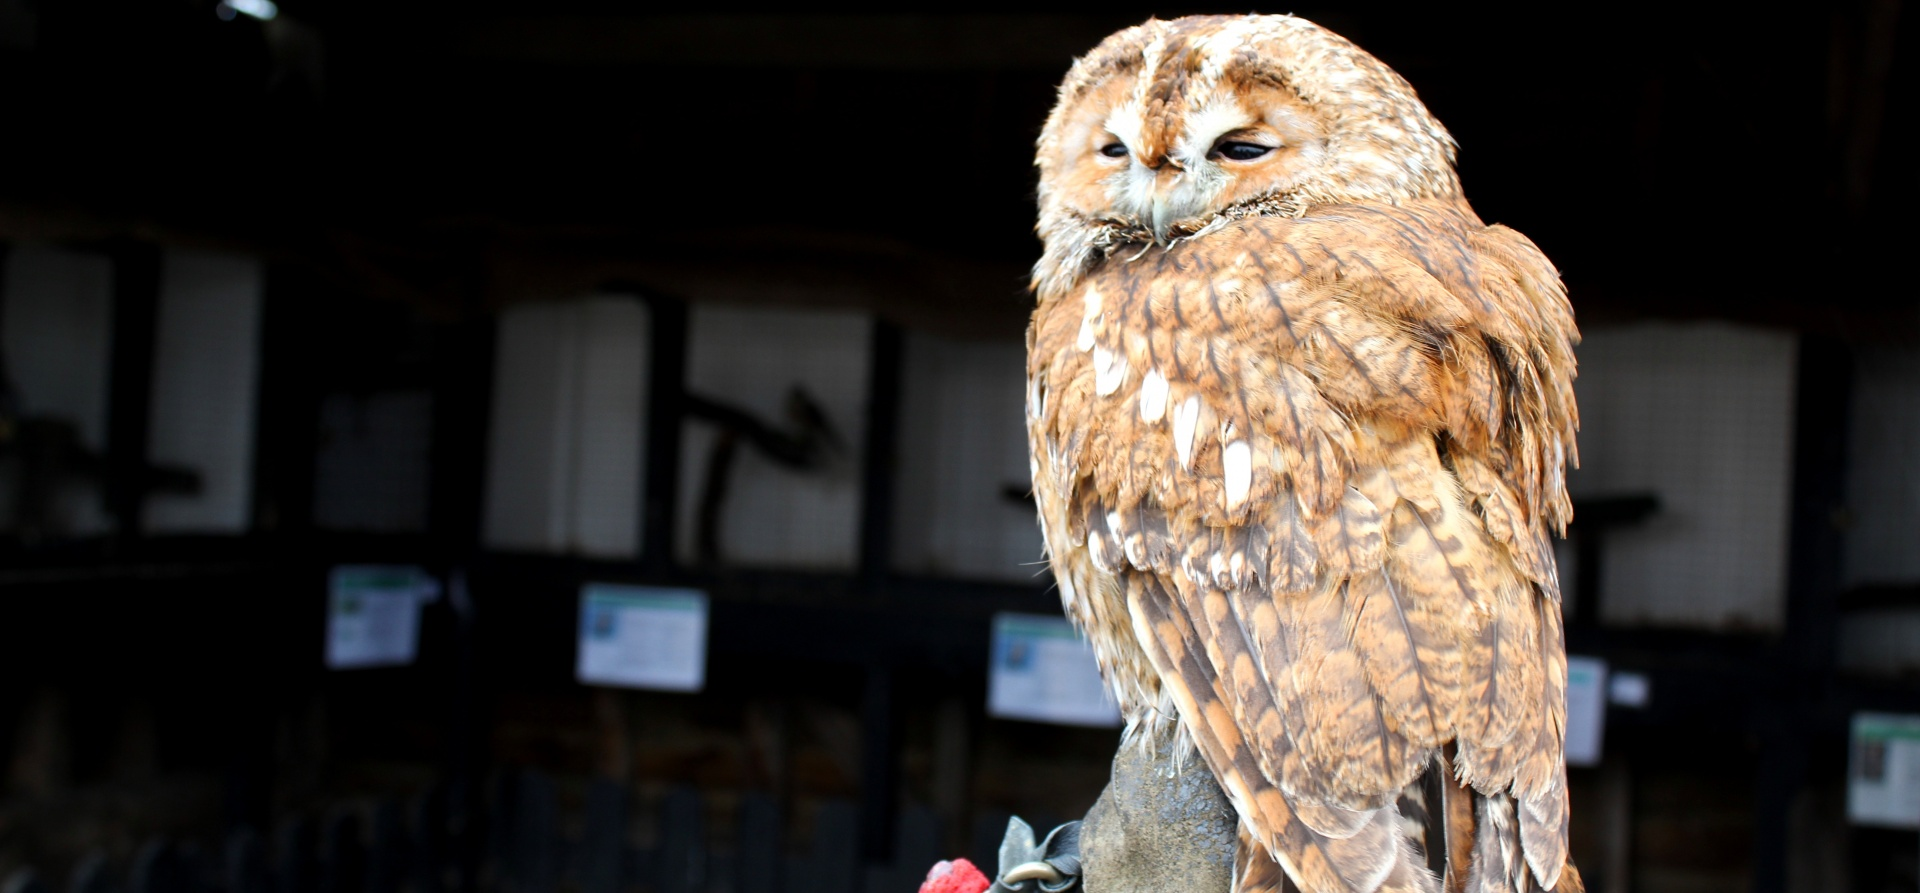 Archery And Bird Of Prey Experience Bedfordshire